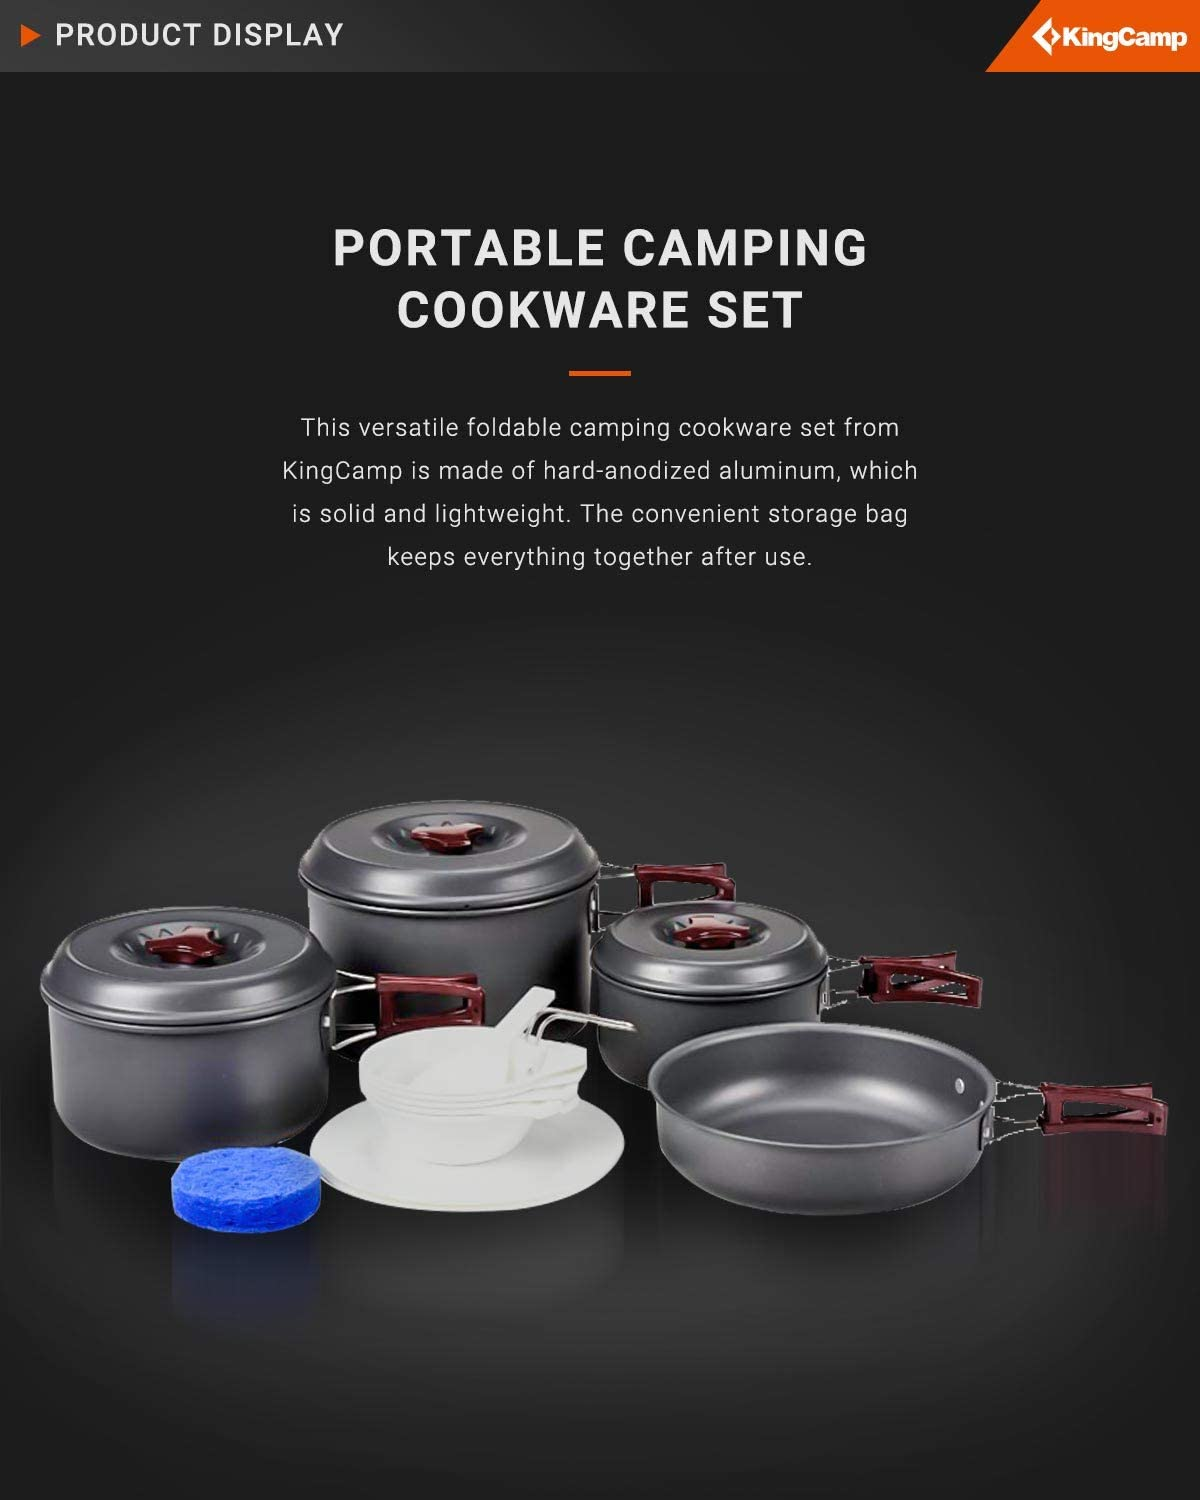 Outdoor Camp Gear Accessories for Family Hiking Picnic Lightweight Cookware Sets Backpacking Cooking Set KingCamp Camping Cookware Mess Kit